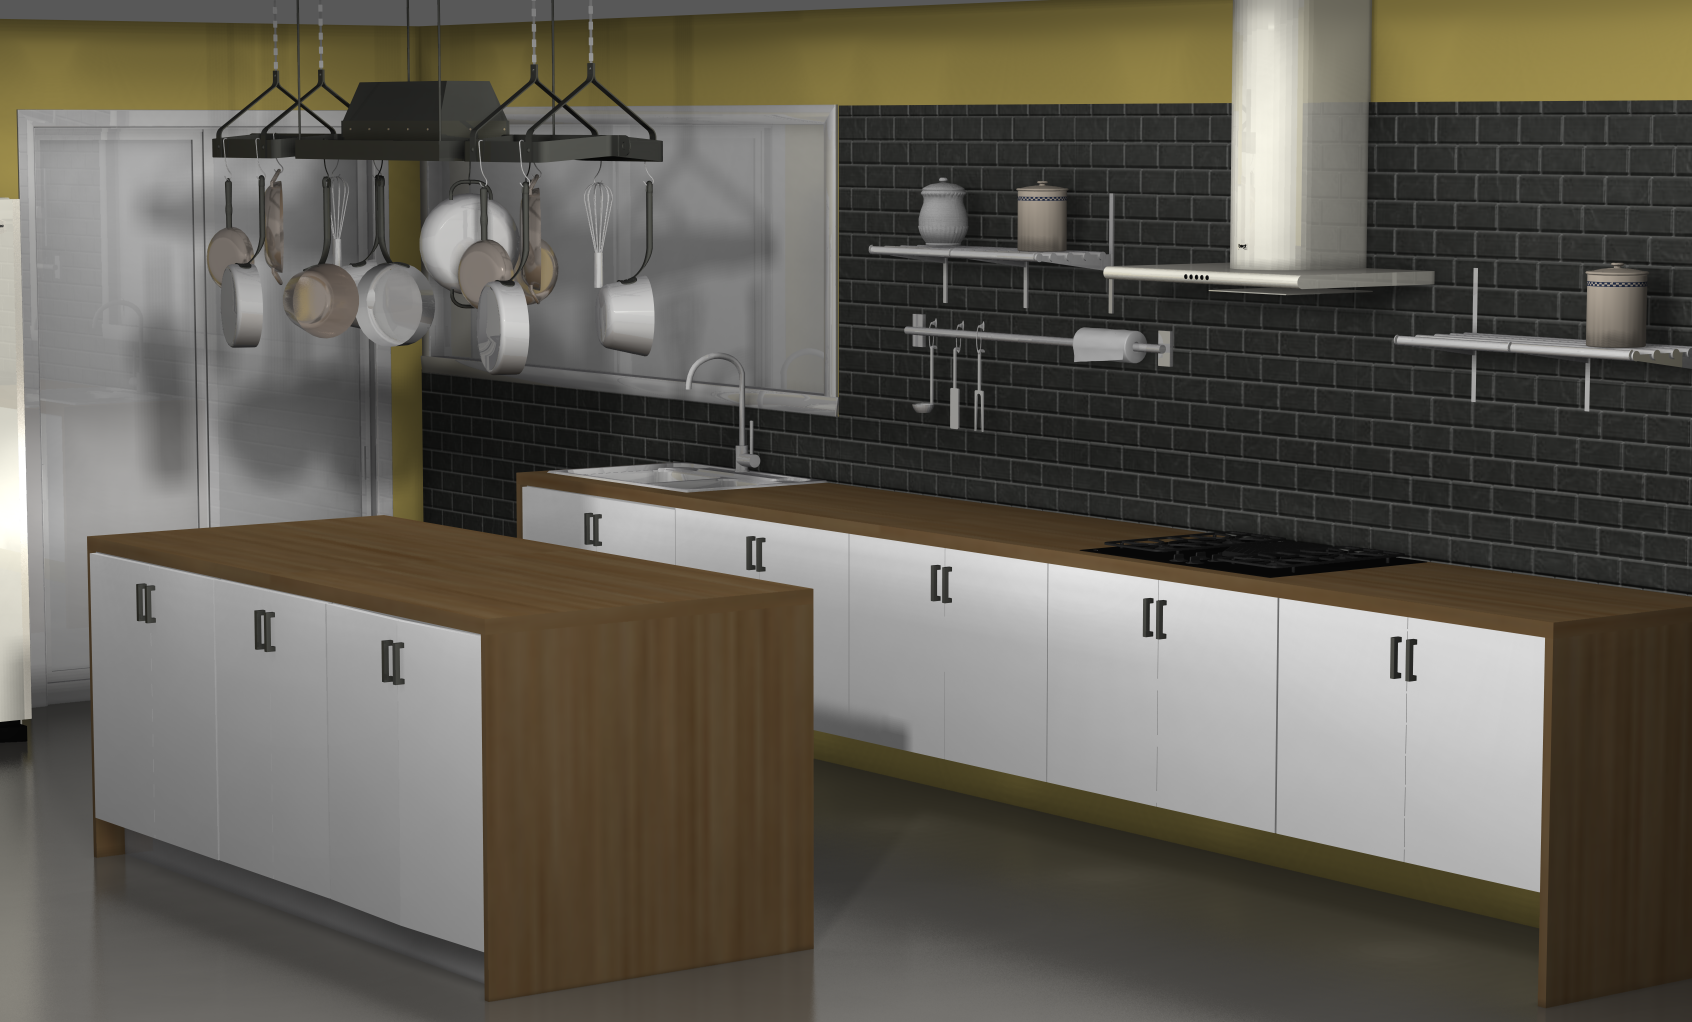 Kitchen design ideas an ikea kitchen with fewer wall cabinets for Kitchen without tiles